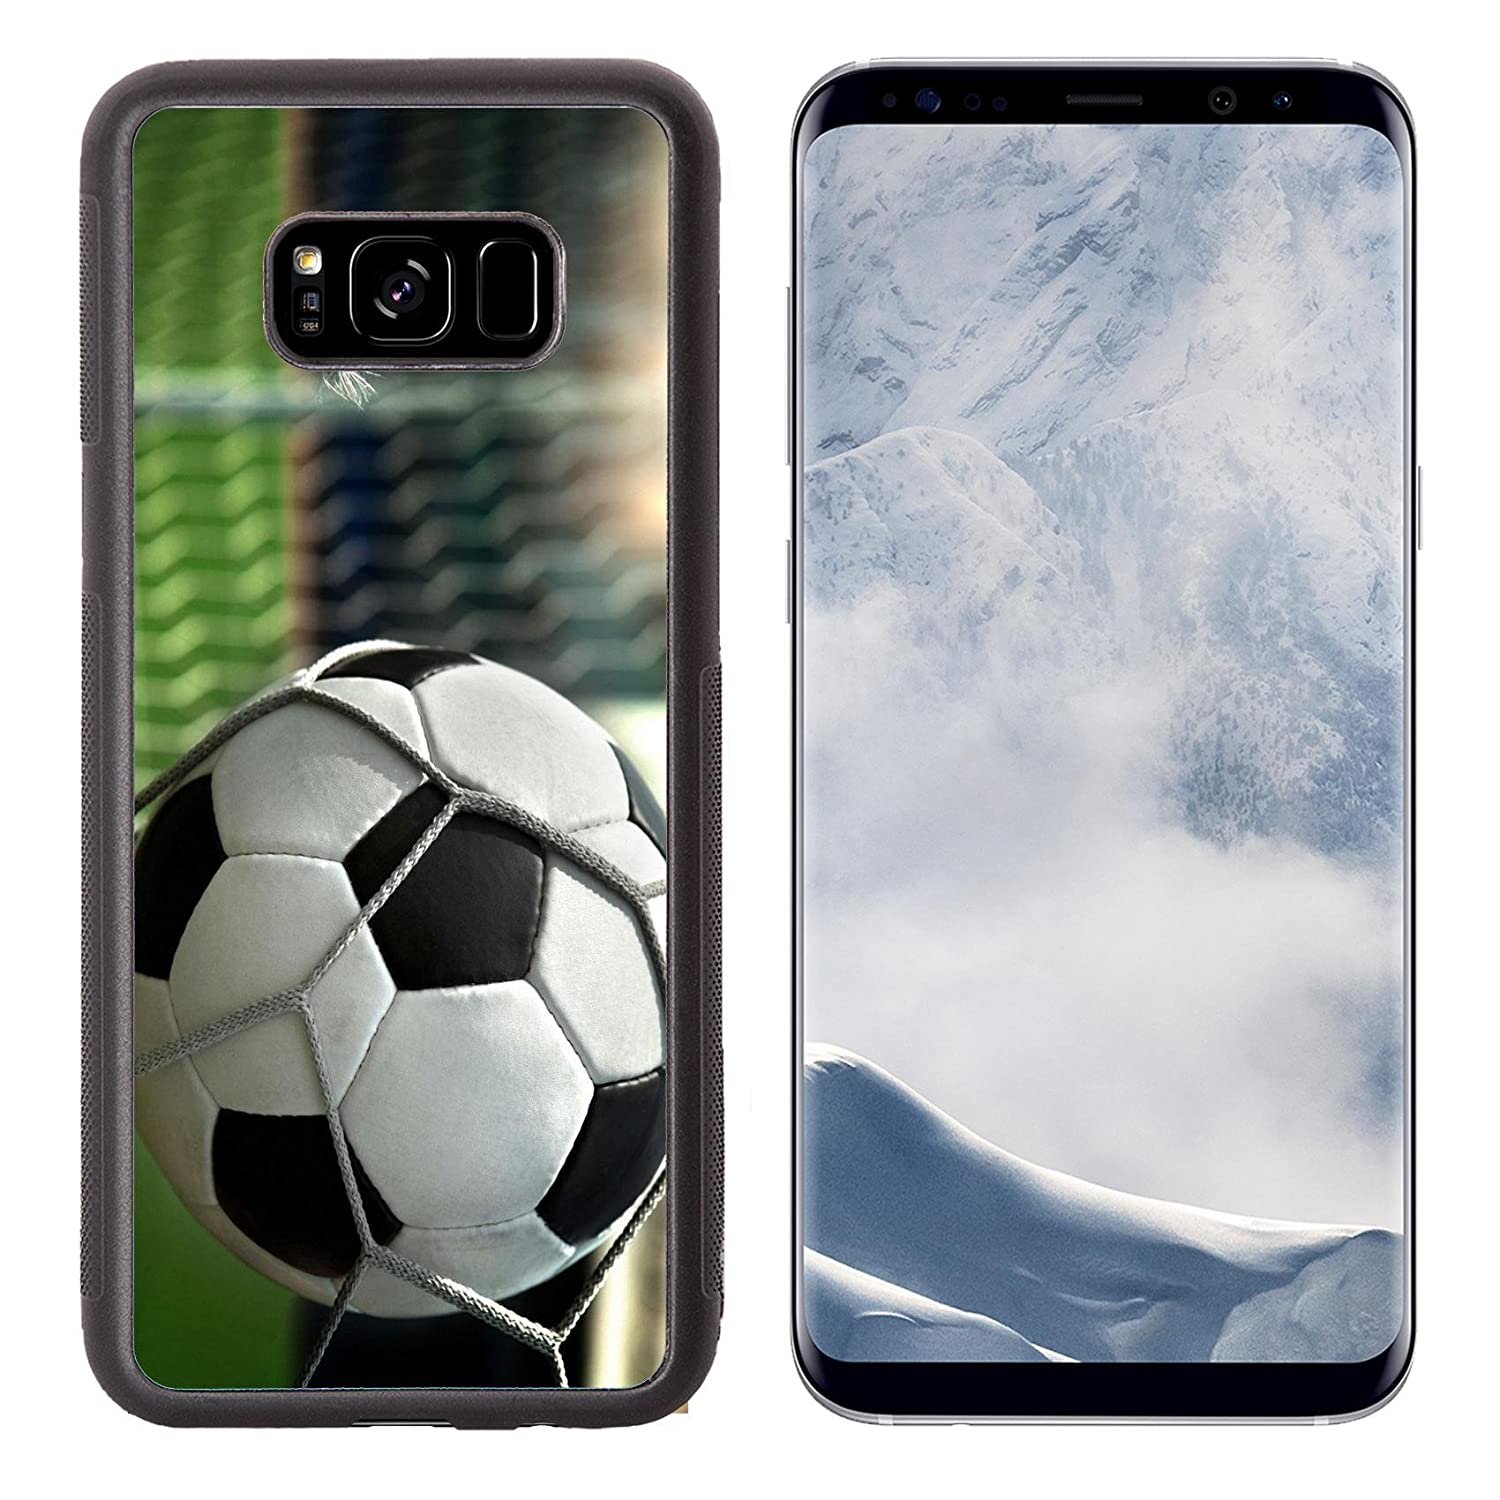 MSD Samsung Galaxy S8 Plus Aluminum Backplate Bumper Snap Case IMAGE of ball soccer sport football play game black leather white leisure equipment net round